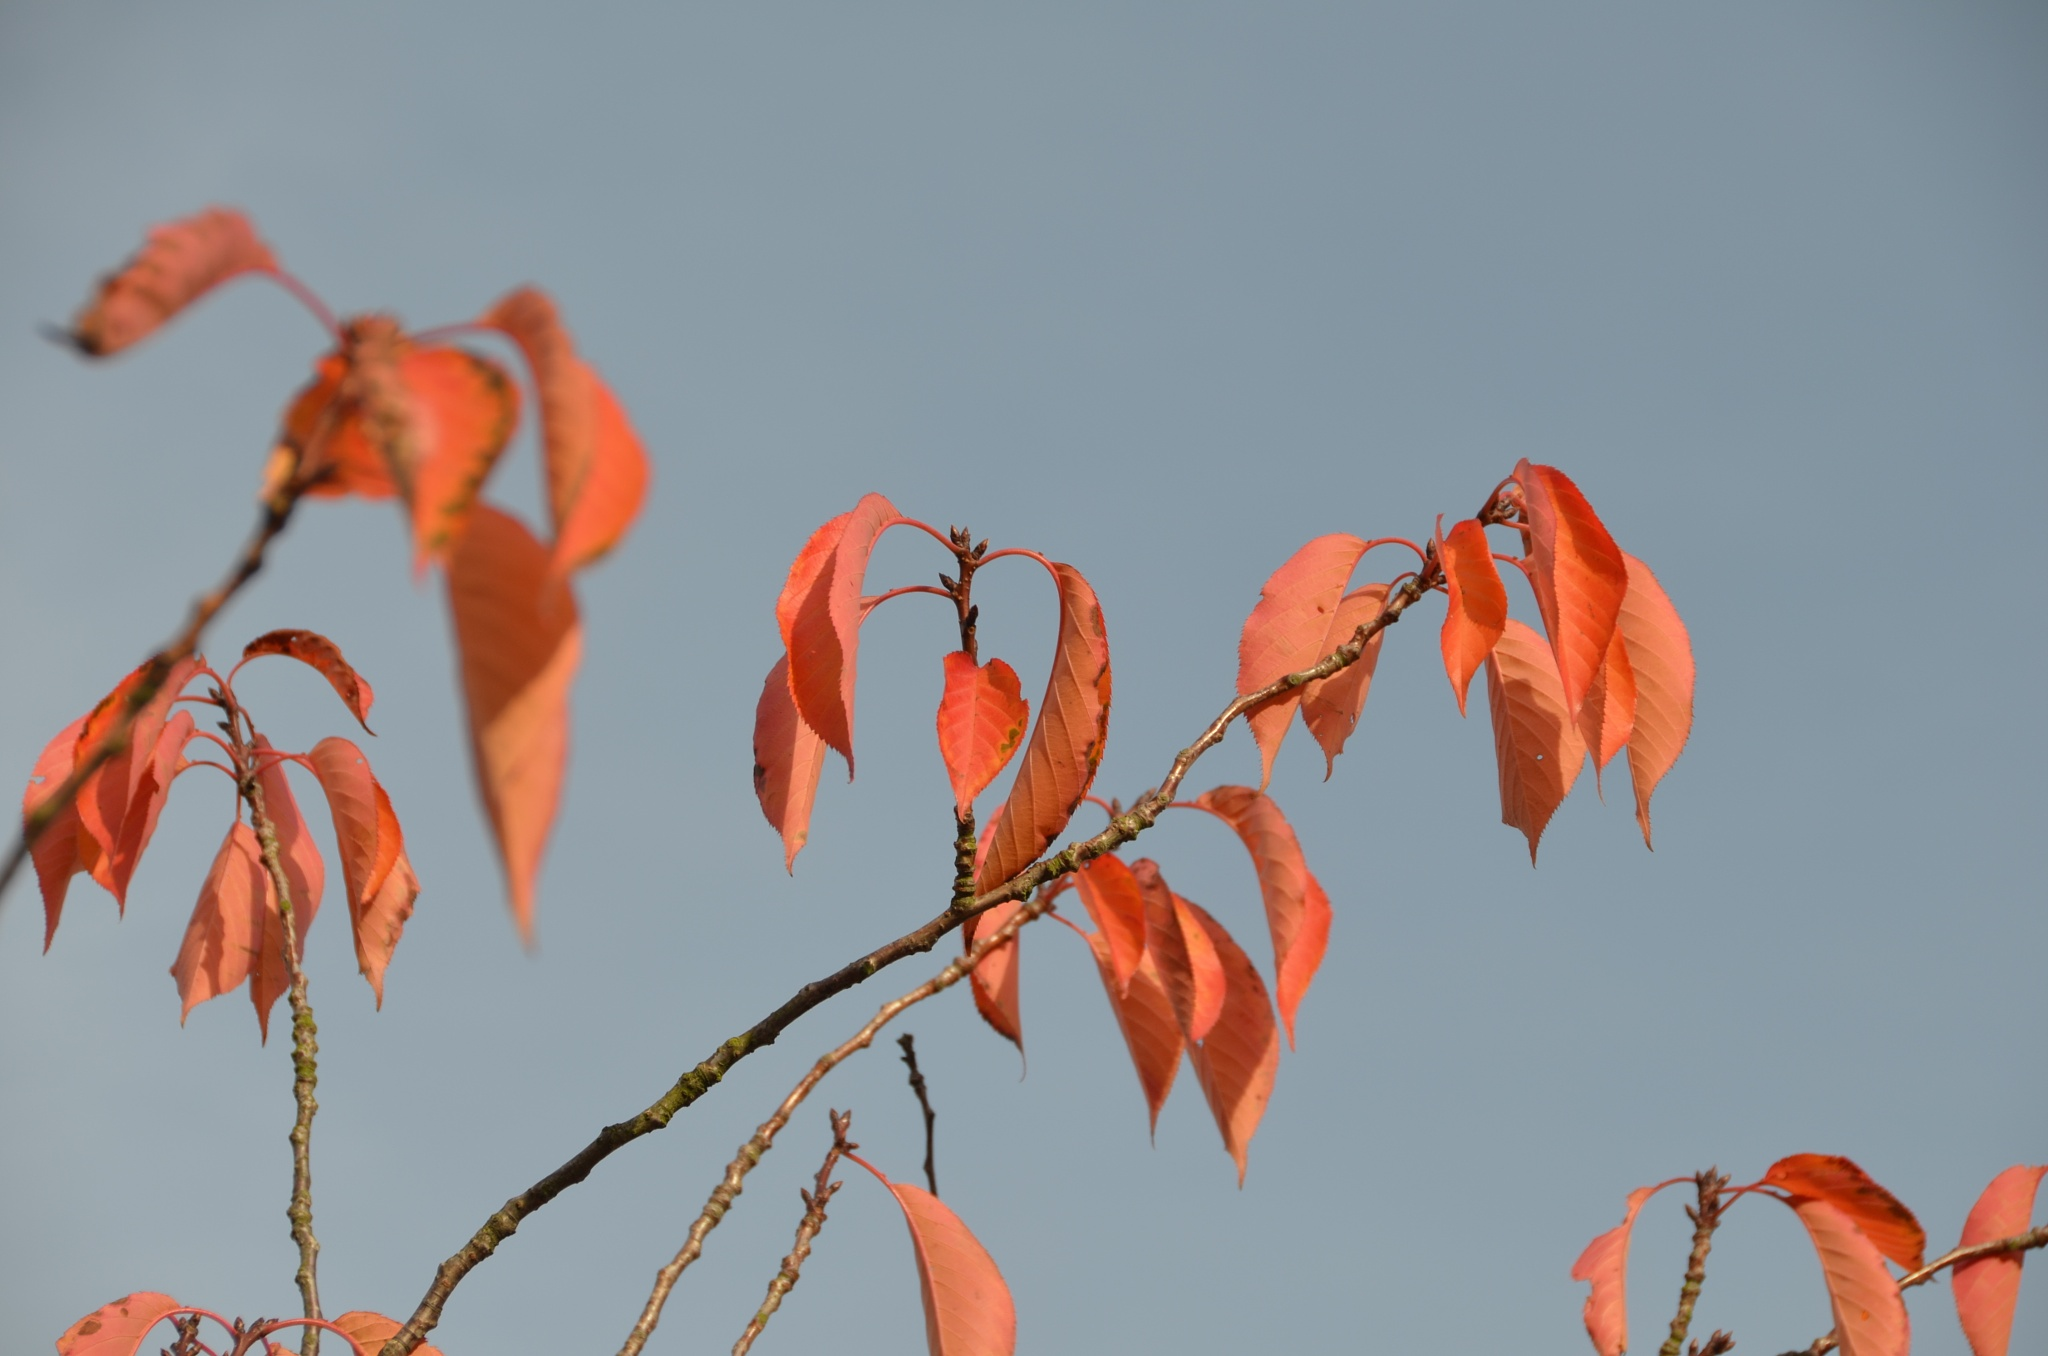 leaves by handige.vriend